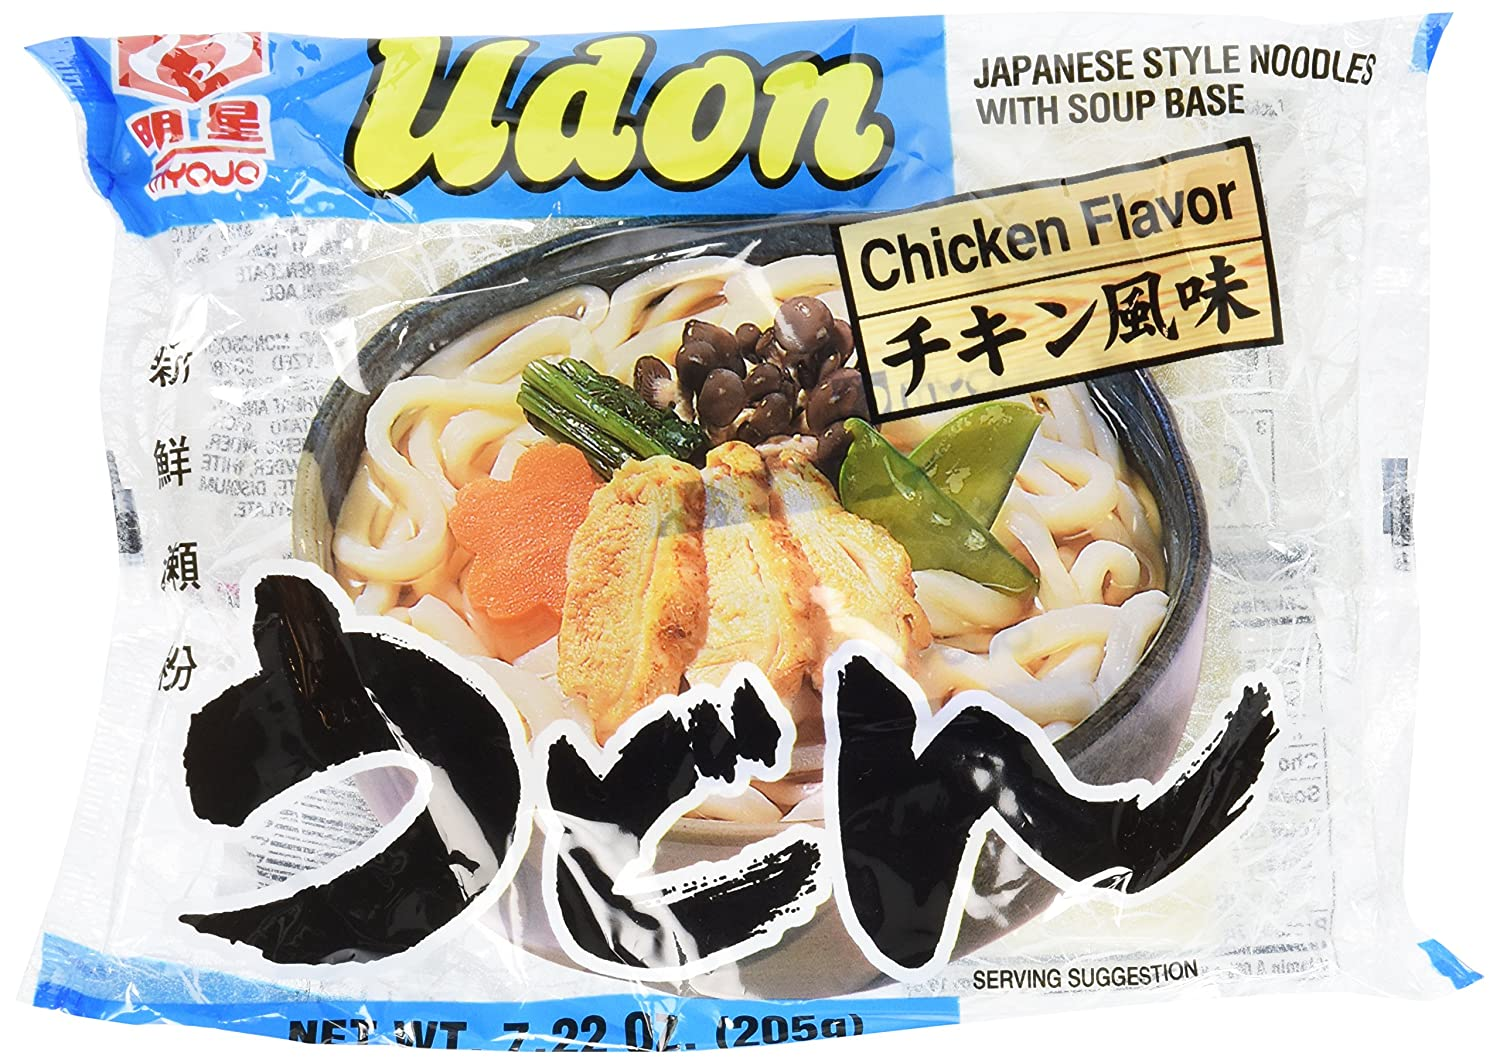 Myojo Udon Japanese Style Noodles with Soup Base, Chicken Flavor, 7.22-Ounce Bag (Pack of 15)